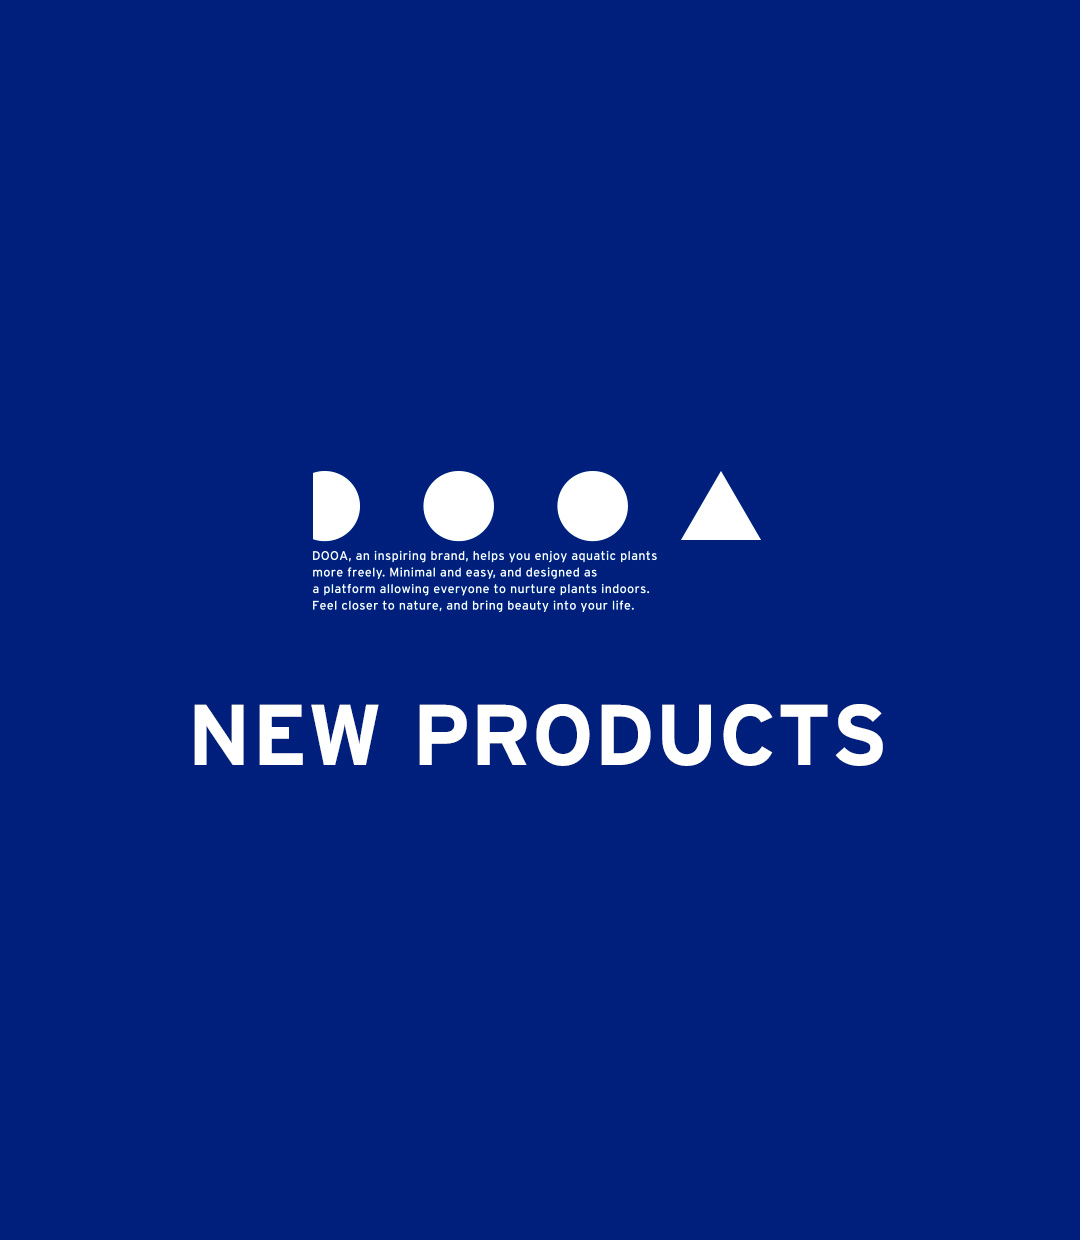 DOOA NEW PRODUCTS 'More Fun with DOOA's New Ideas'